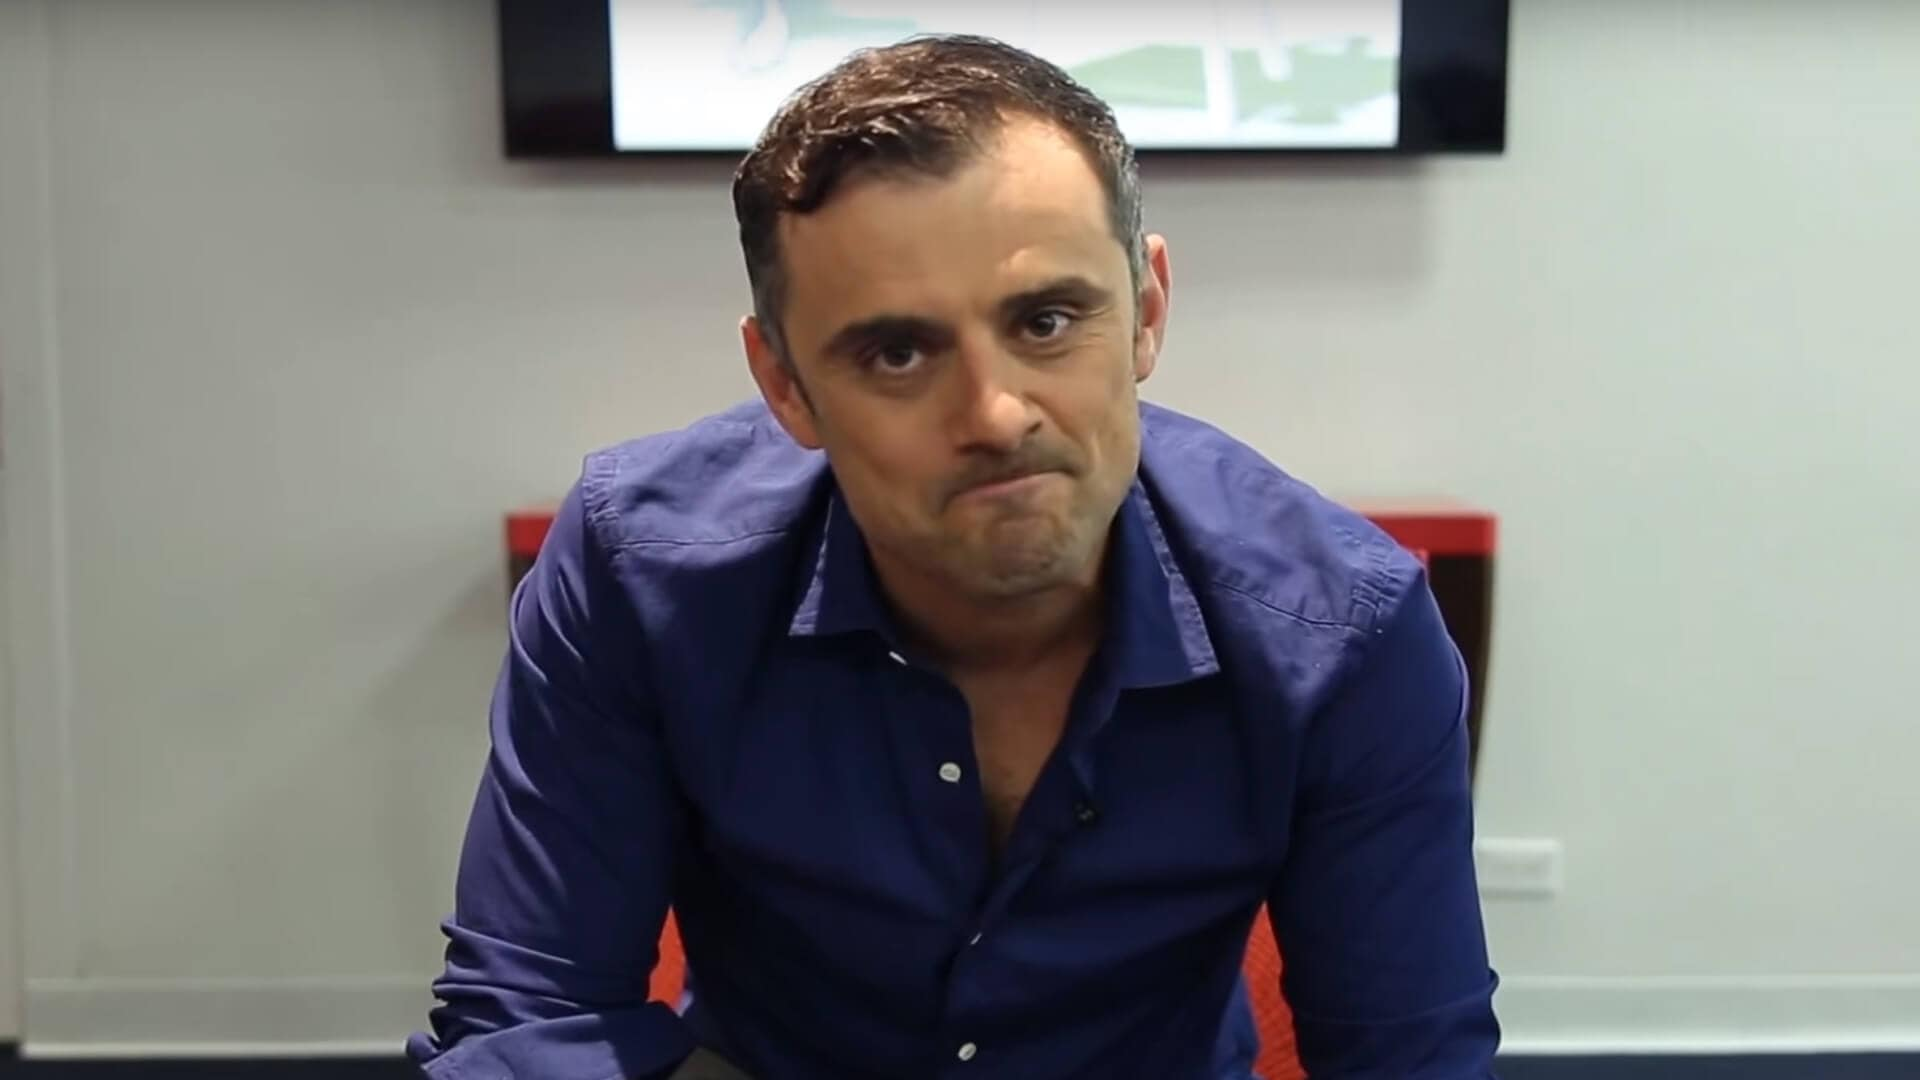 Gary Vaynerchuk about to go on TV